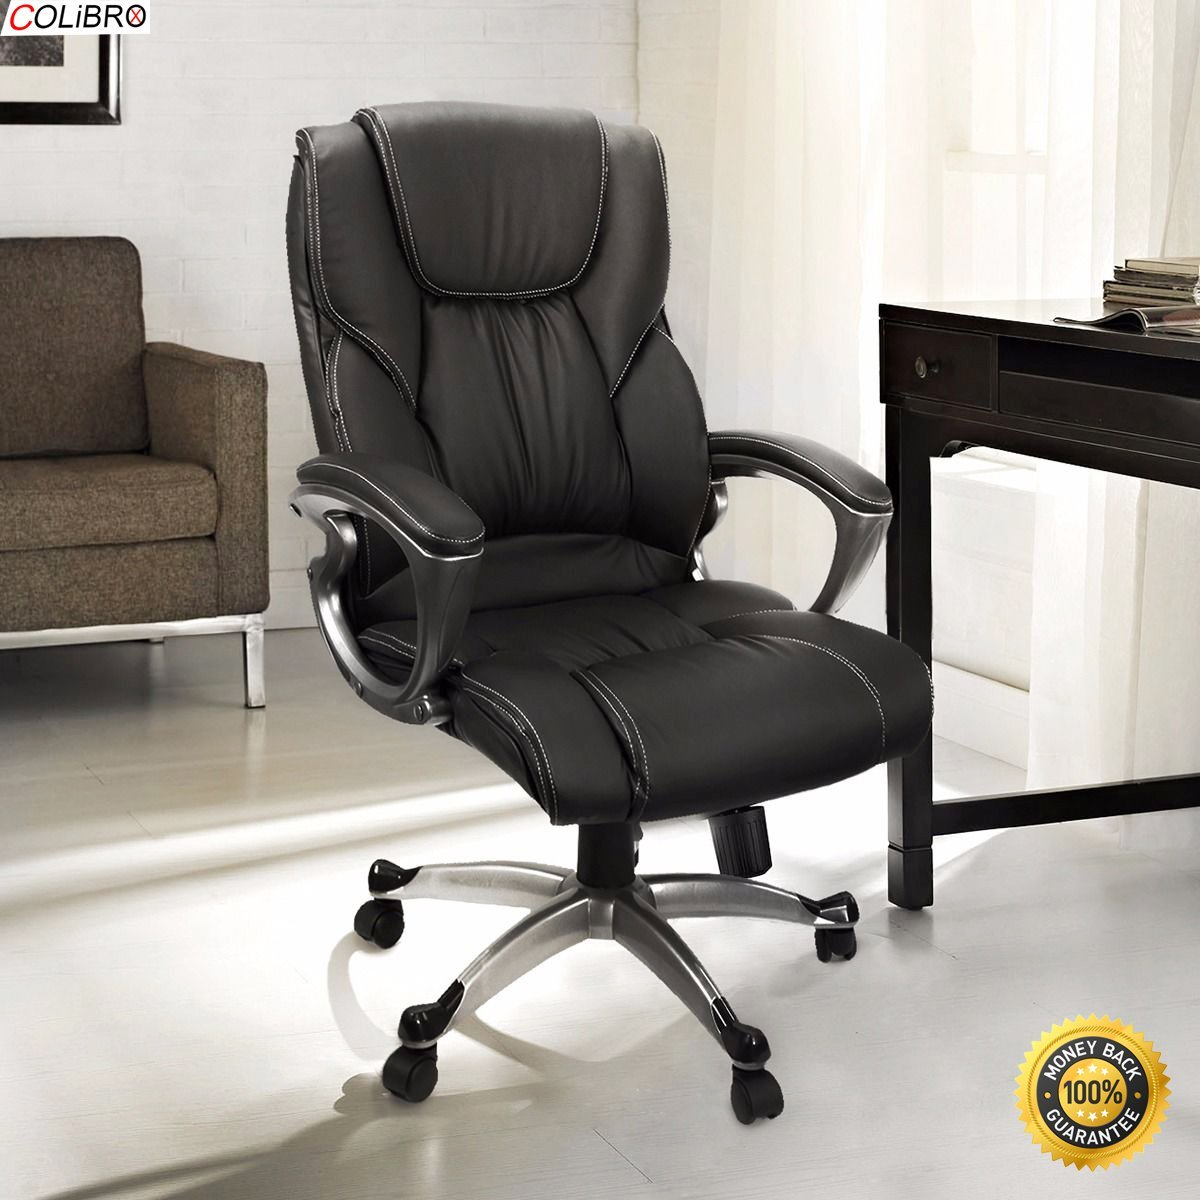 COLIBROX--Black PU Leather High Back Office Chair Executive Task Ergonomic Computer Desk. Deluxe High-back black PU leather ergonomic executive and managerial office chair.